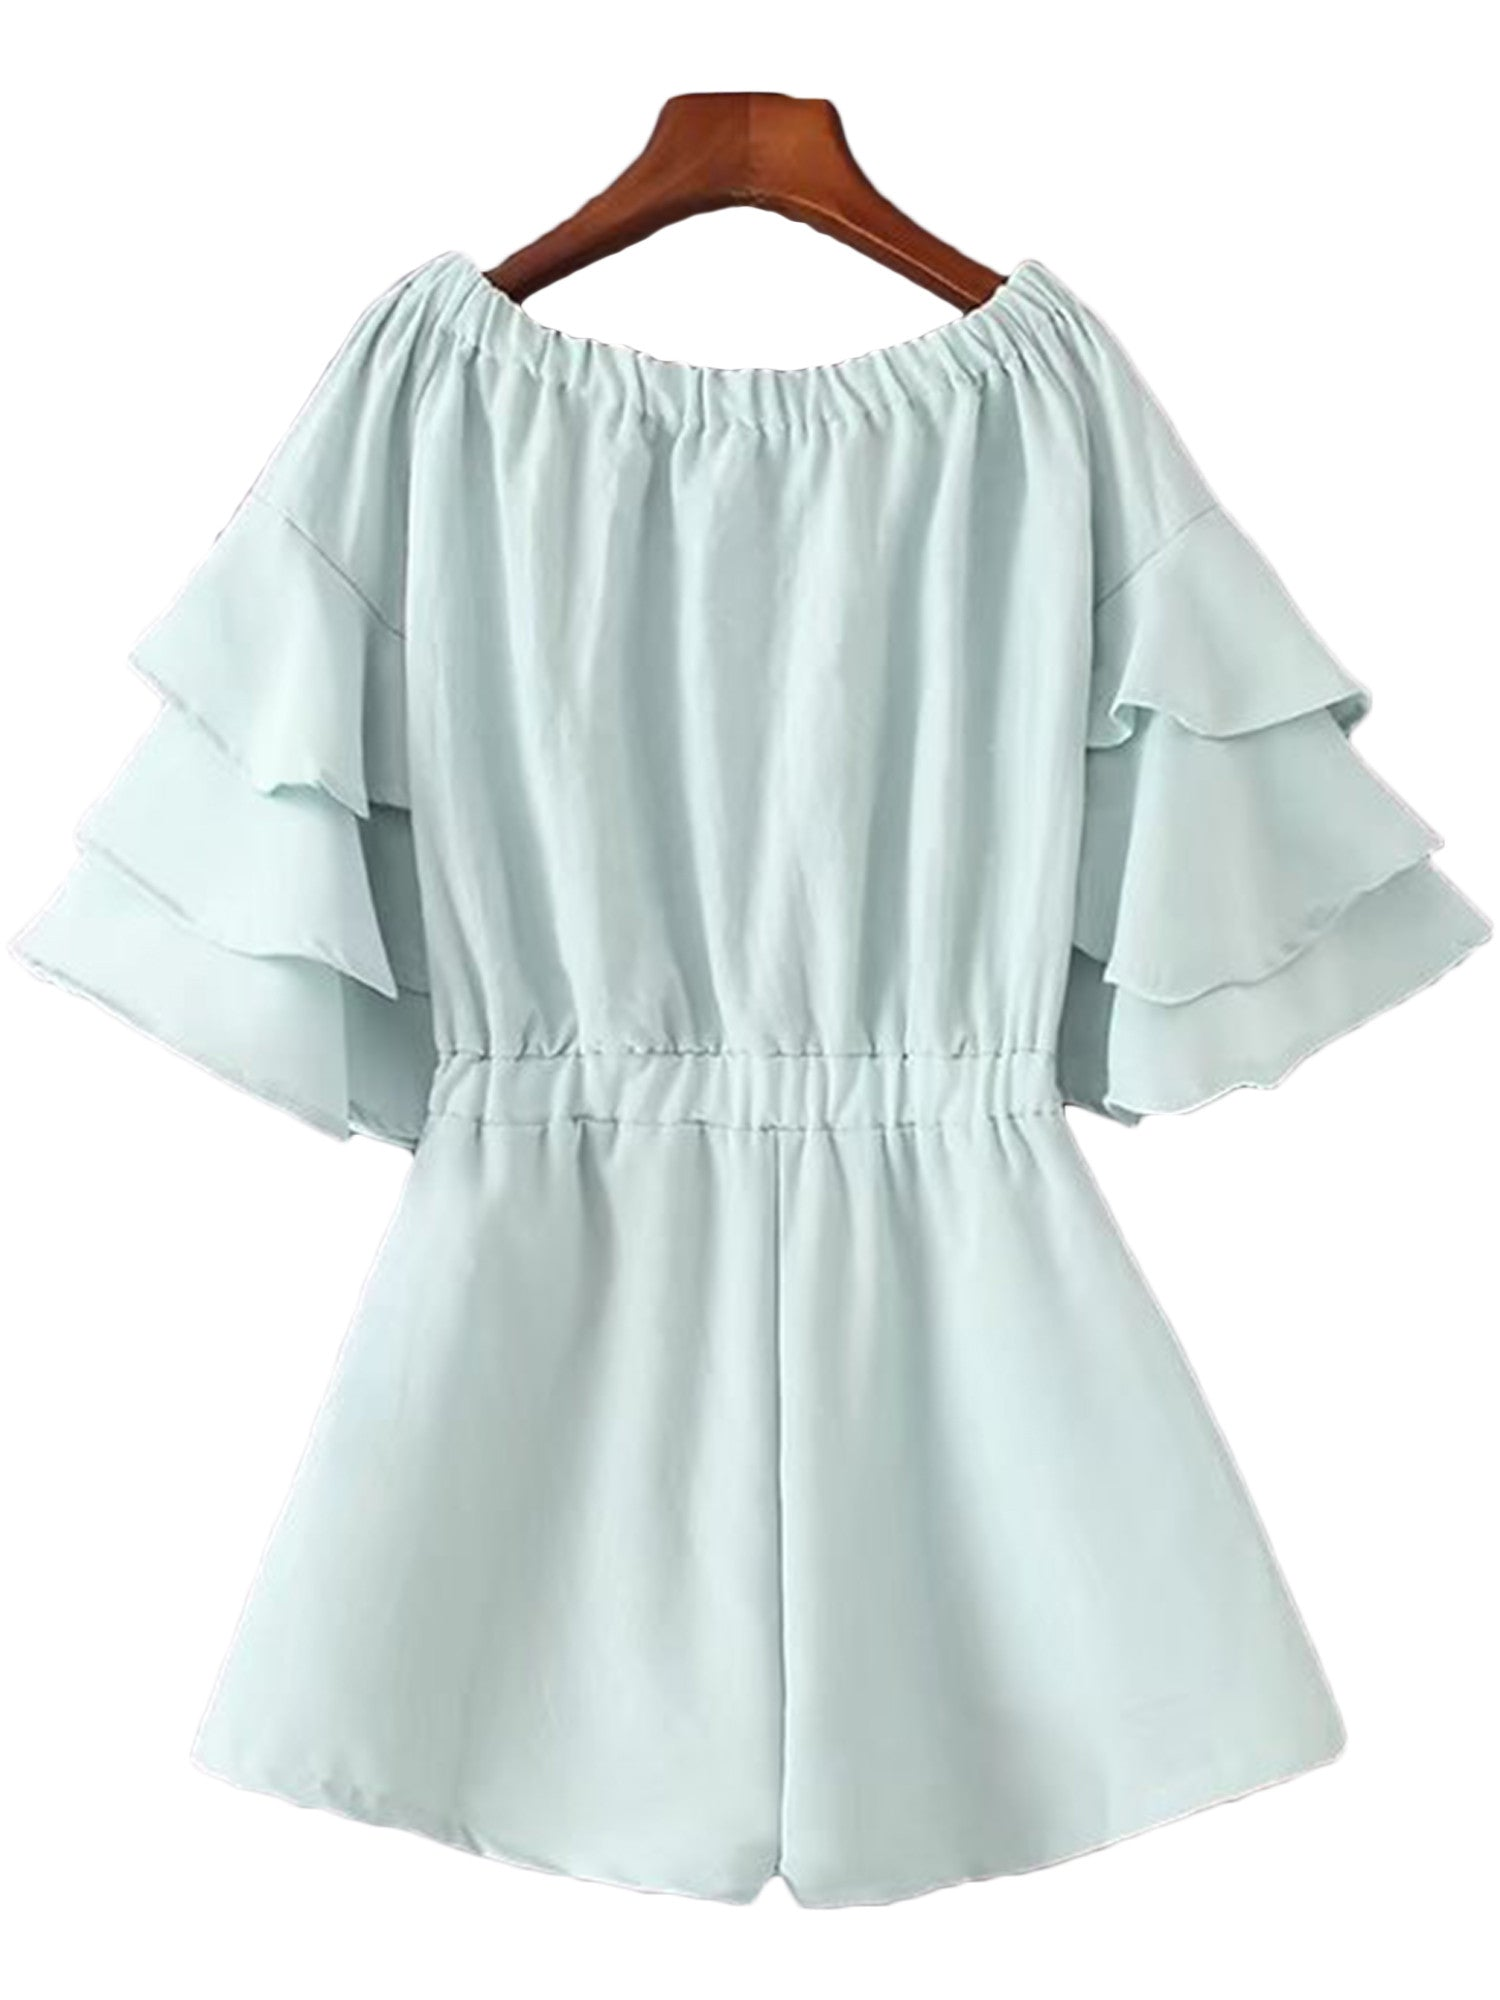 'Celena' Minty Ruffled Sleeve Off Shoulder Romper